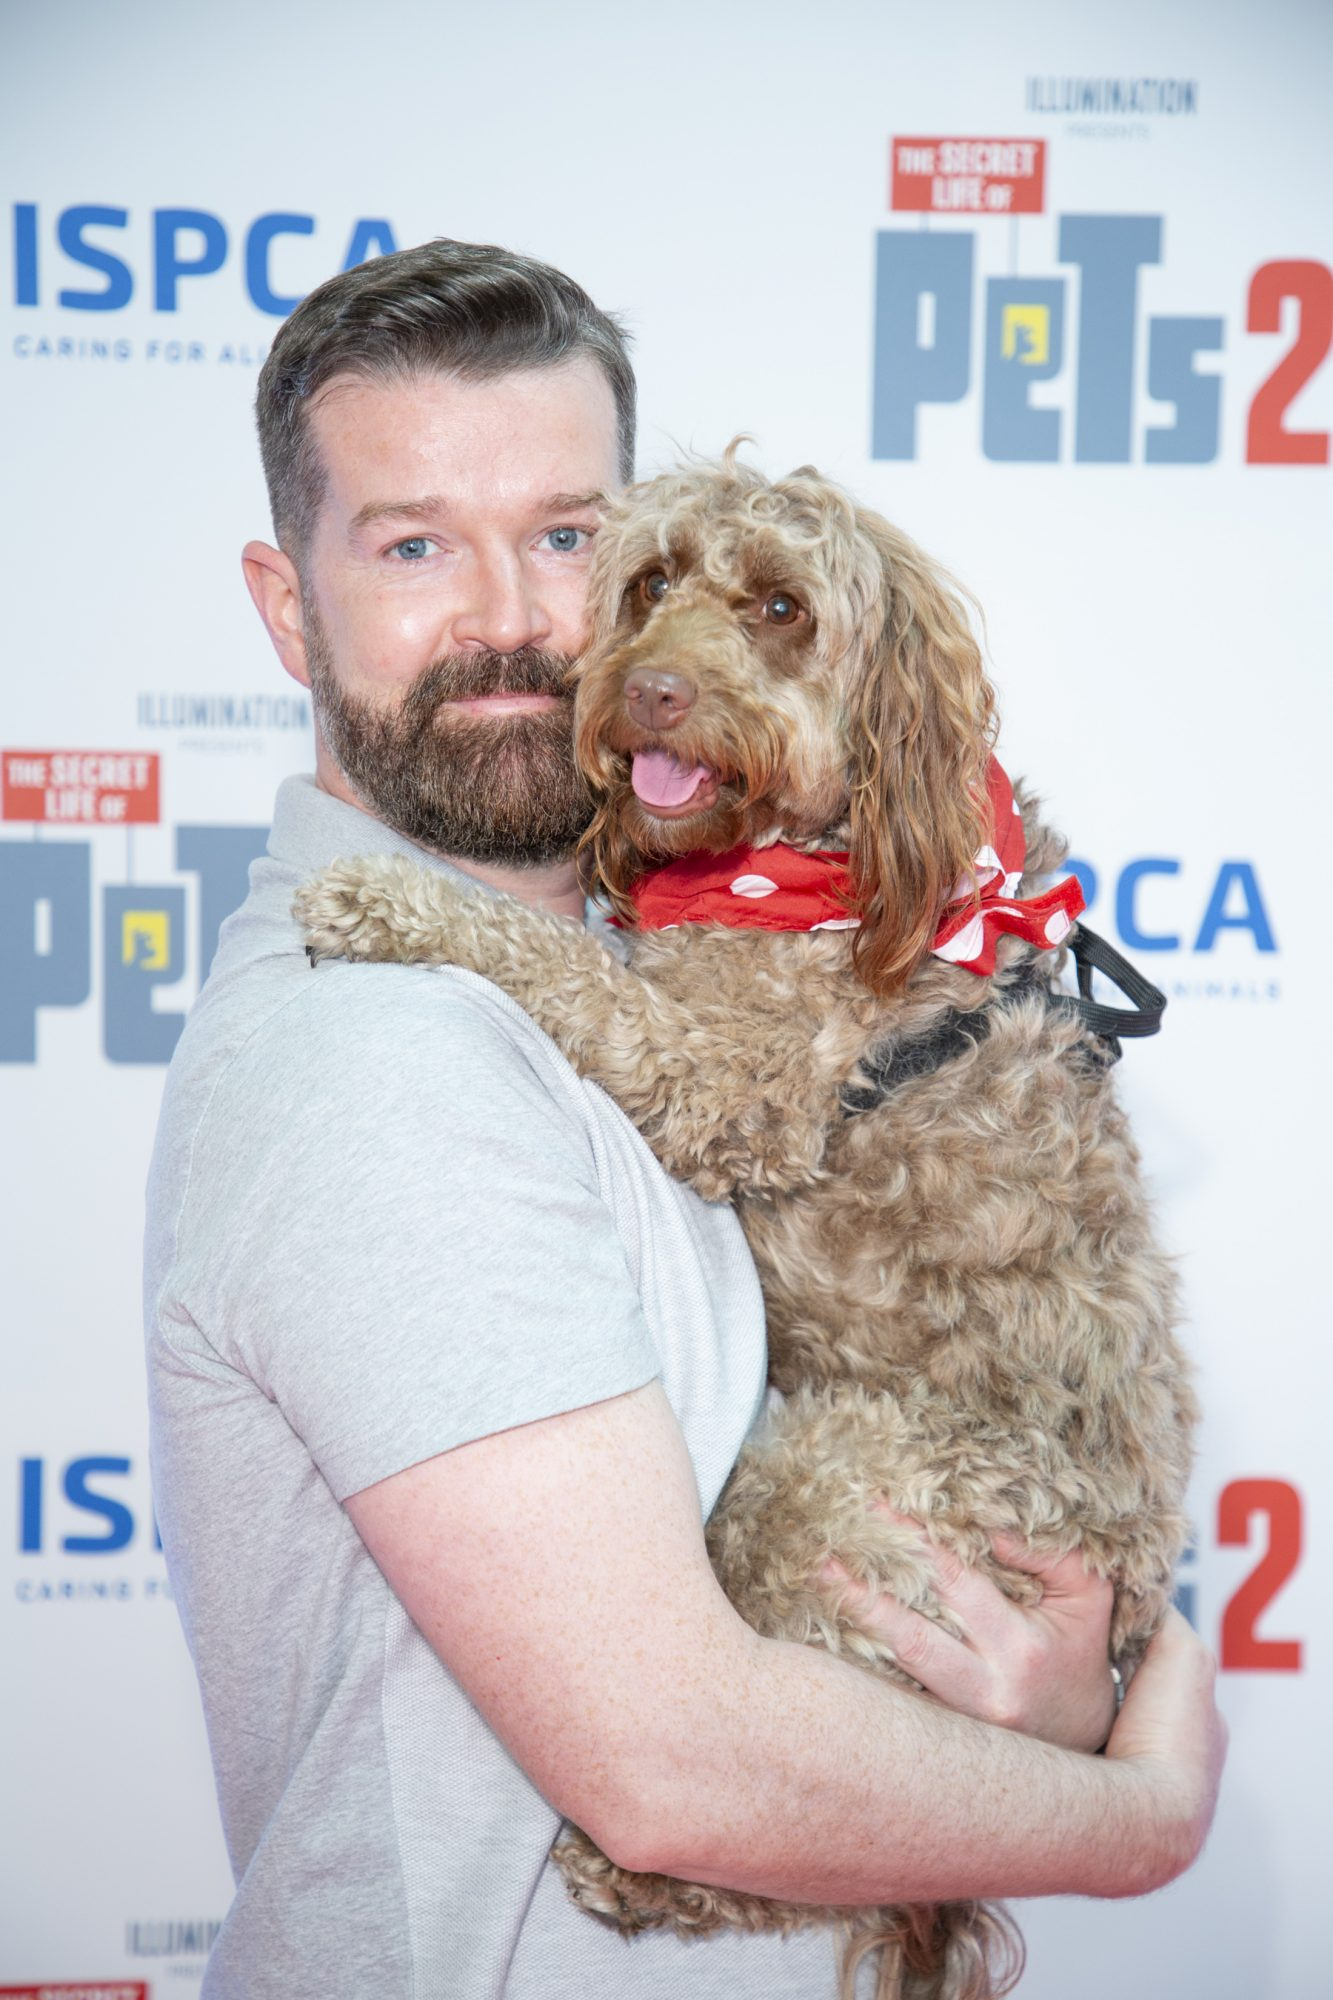 Dave Burke & dog Murphy pictured at the Irish premiere screening of The Secret Life of Pets 2 at Odeon Point Square, Dublin hosted by Universal Pictures in association with the ISPCA. The Secret Life of Pets 2 is in cinemas from Friday May 24th. Photo: Anthony Woods